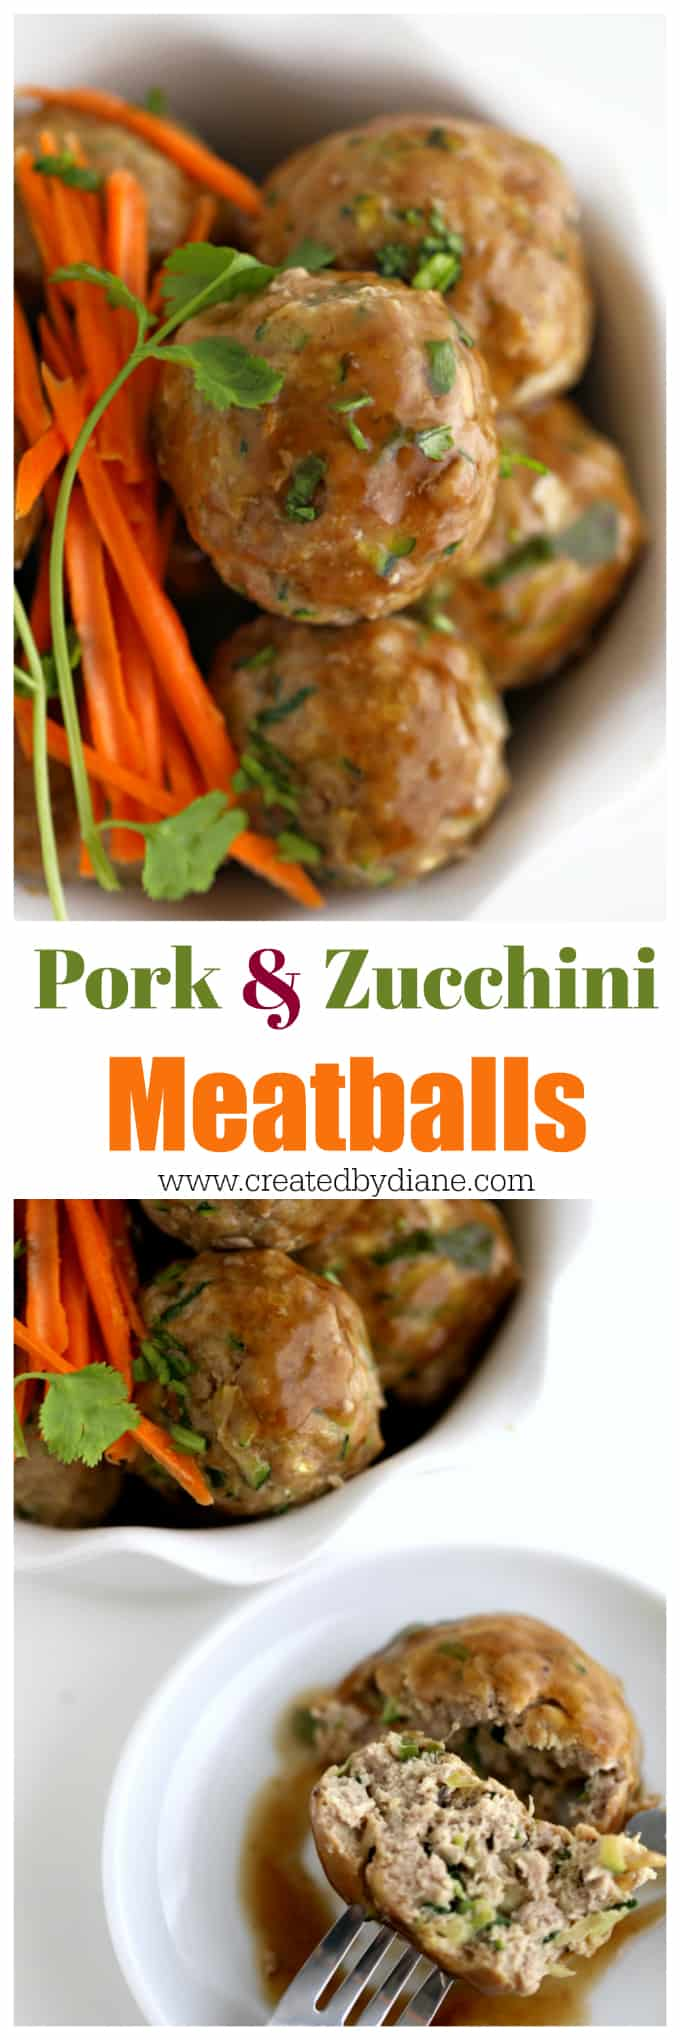 ground pork and zucchini low carb meatball recipe www.createdbydiane.com